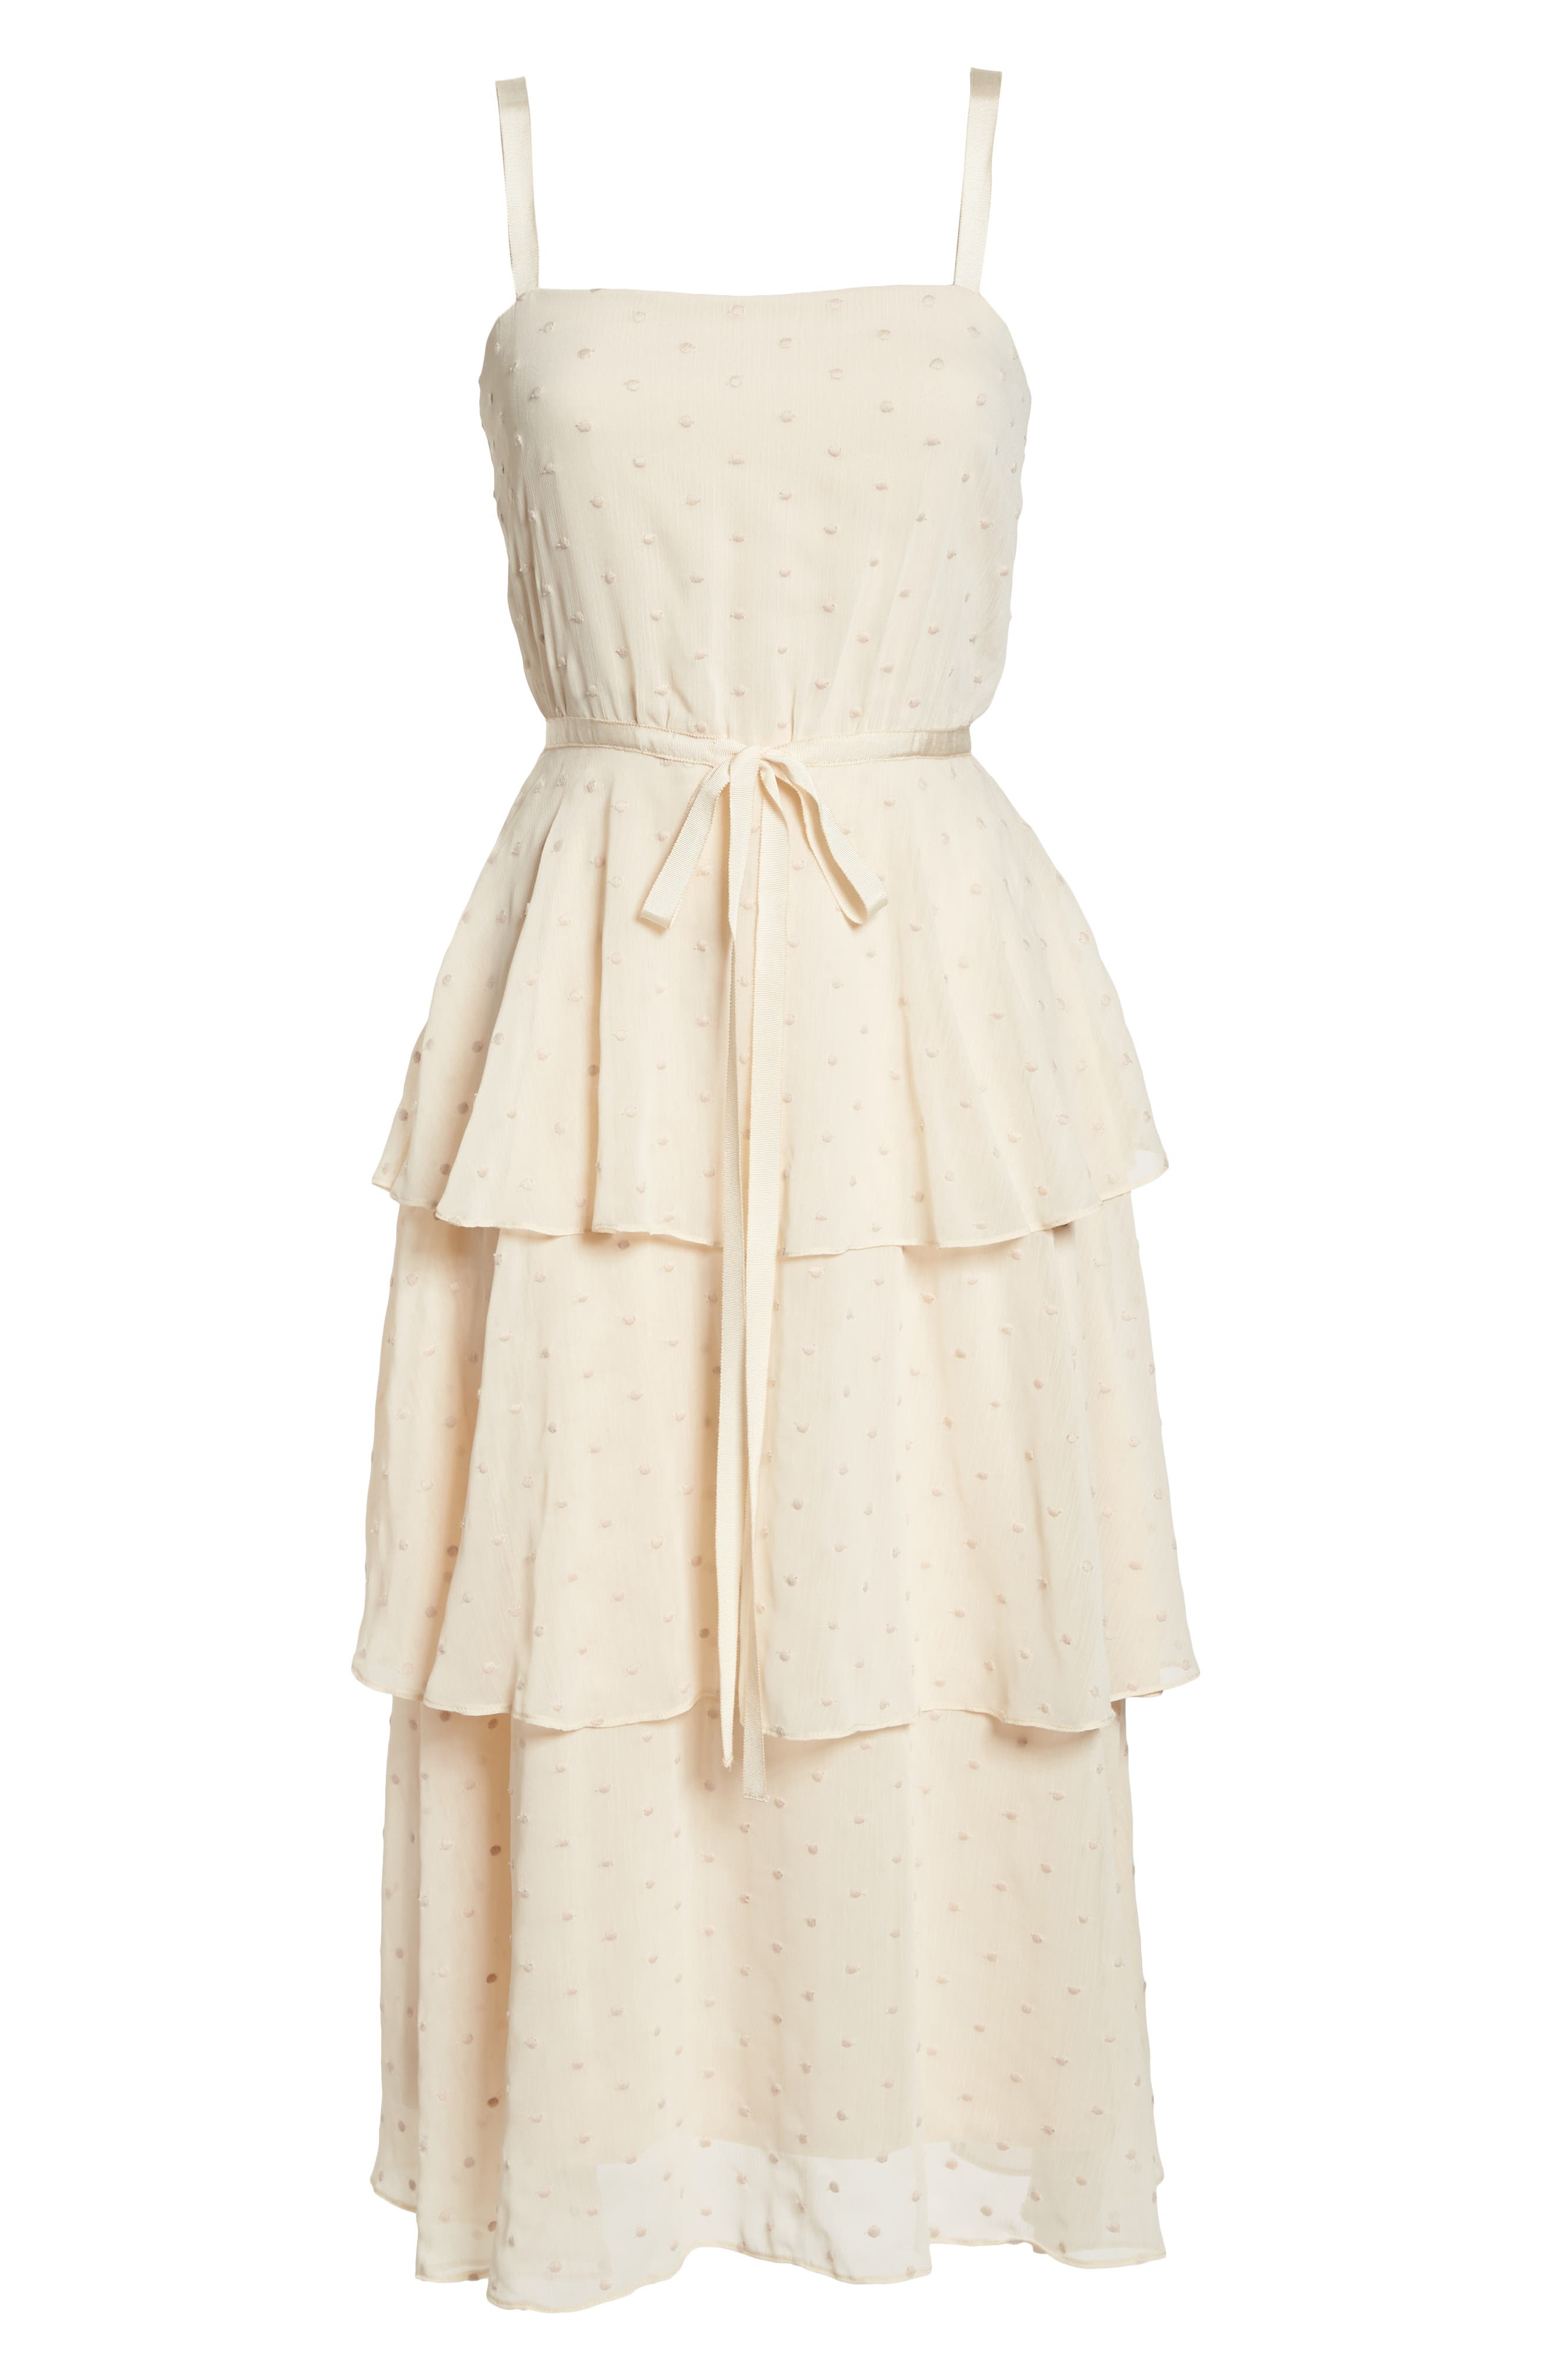 Florence Chiffon Embroidered Tiered A-Line Dress,                             Alternate thumbnail 7, color,                             255